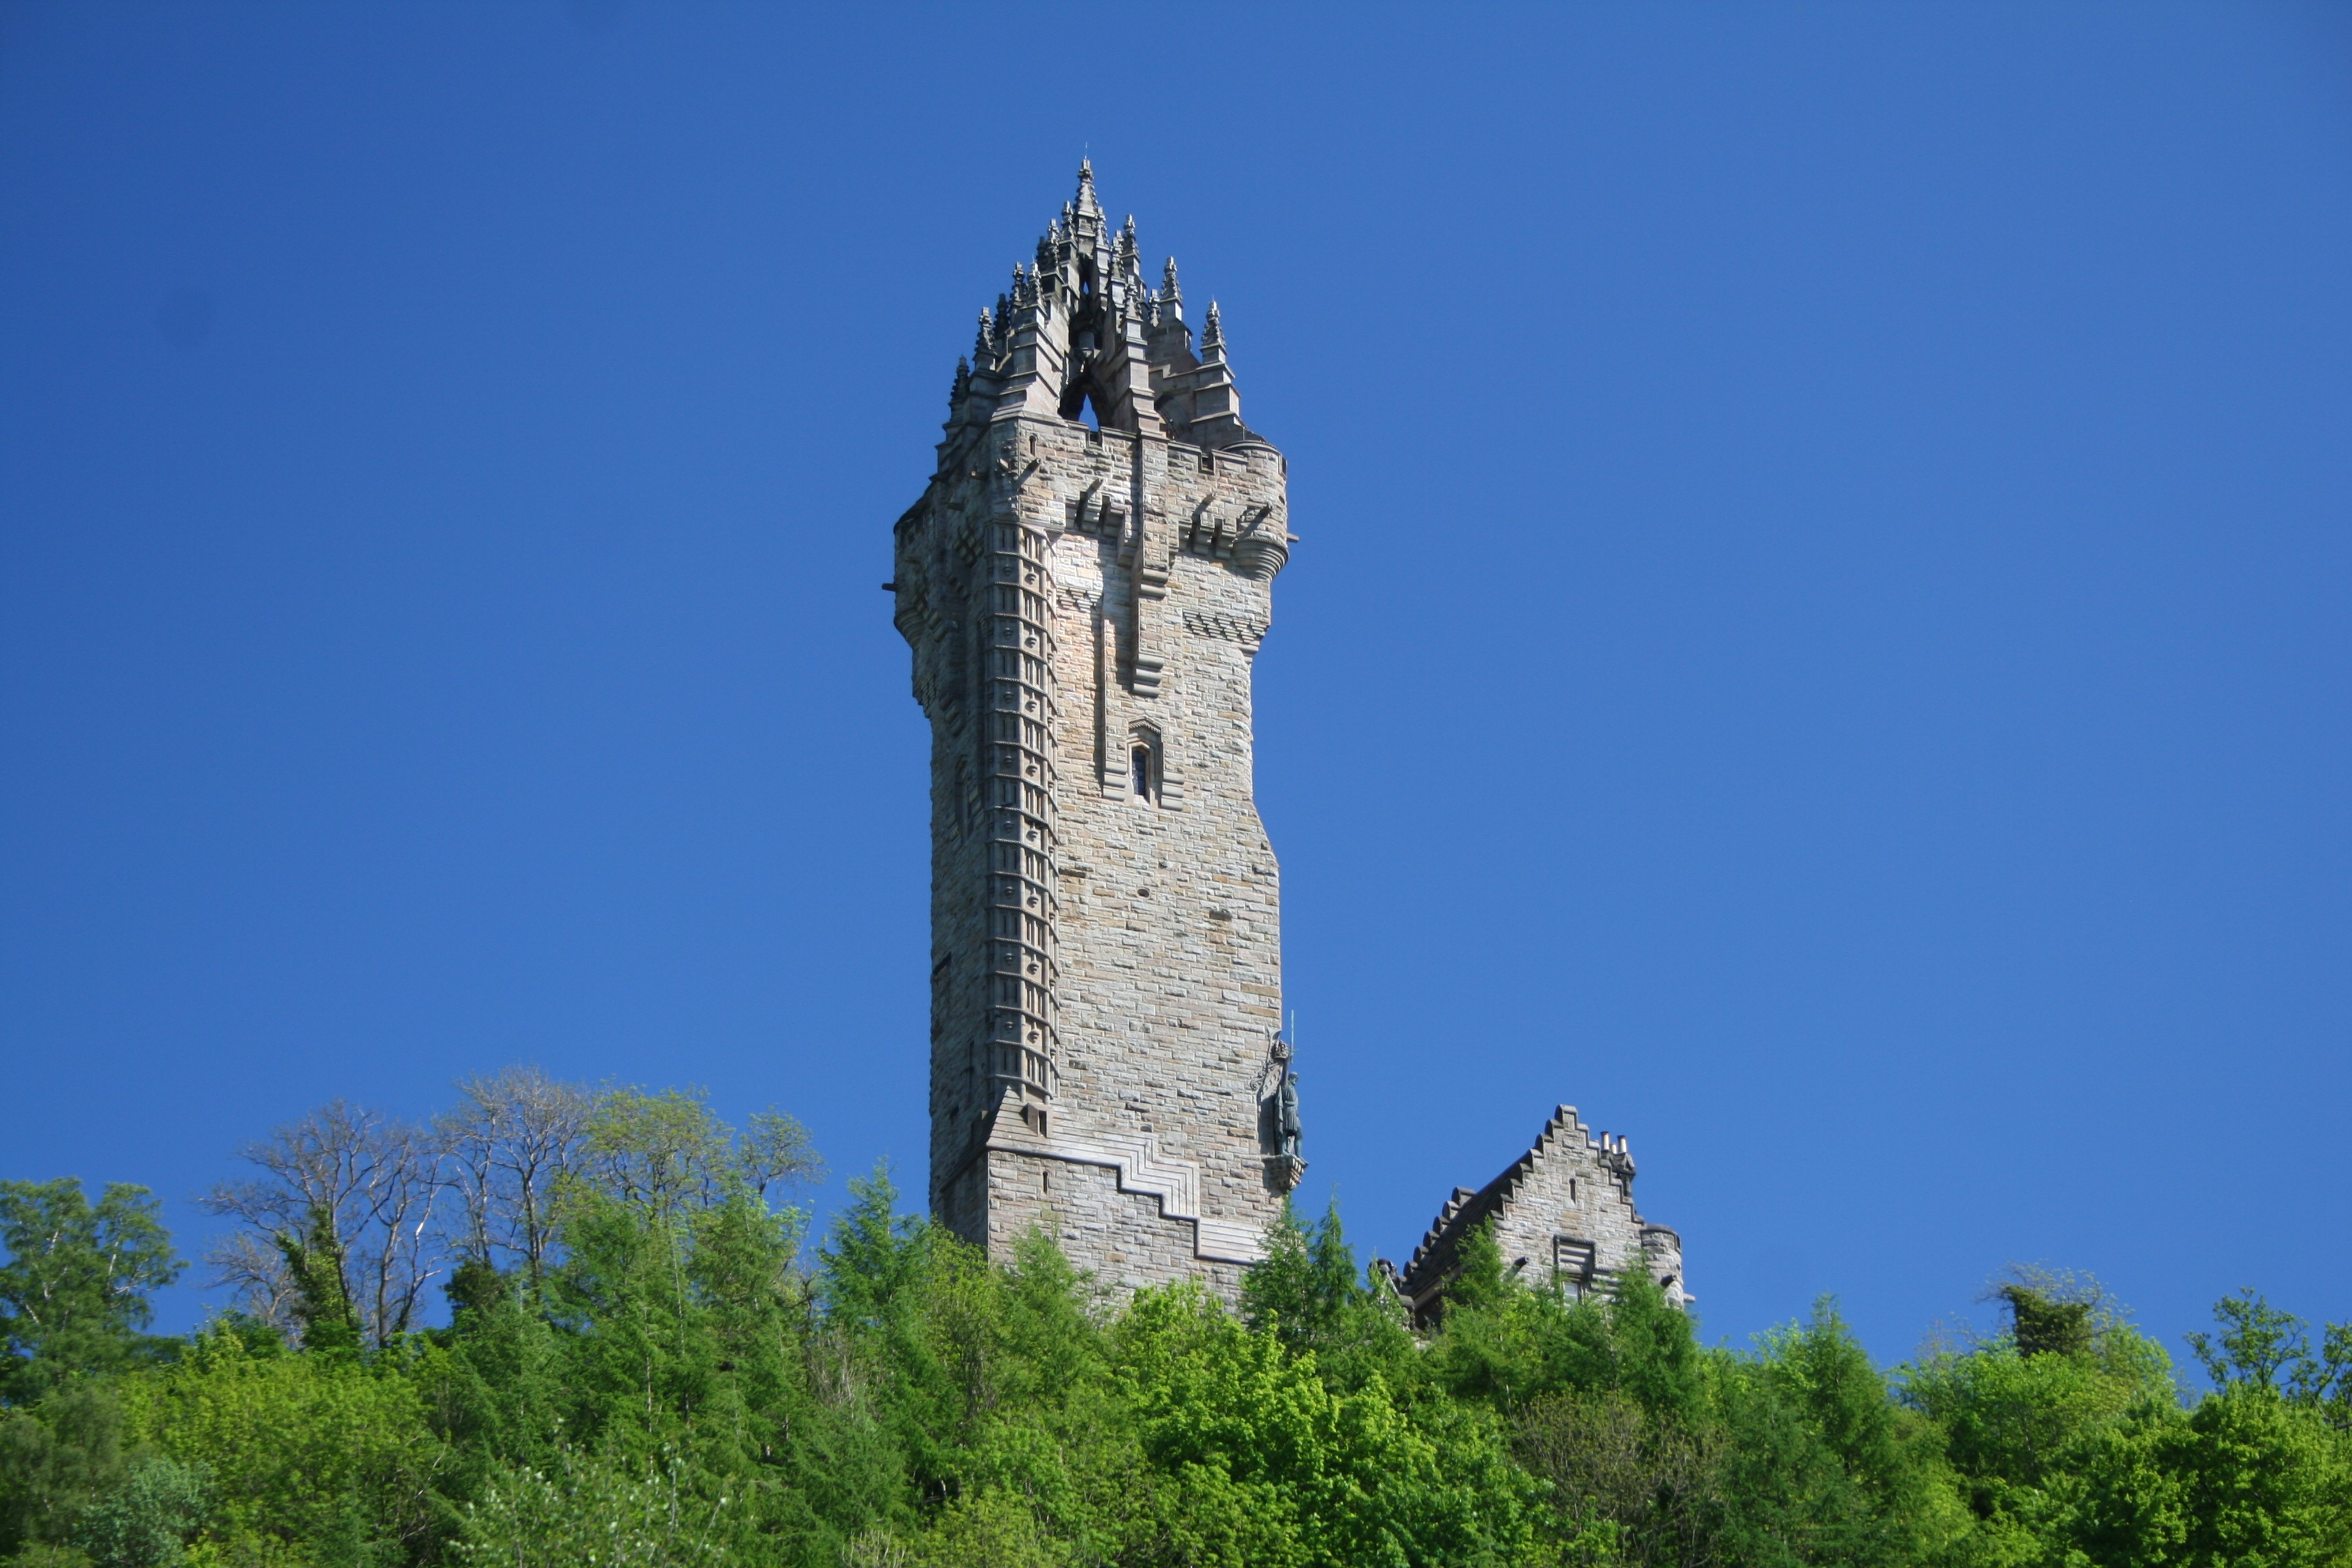 The Wallace Monument has a packed Summer Programme this year